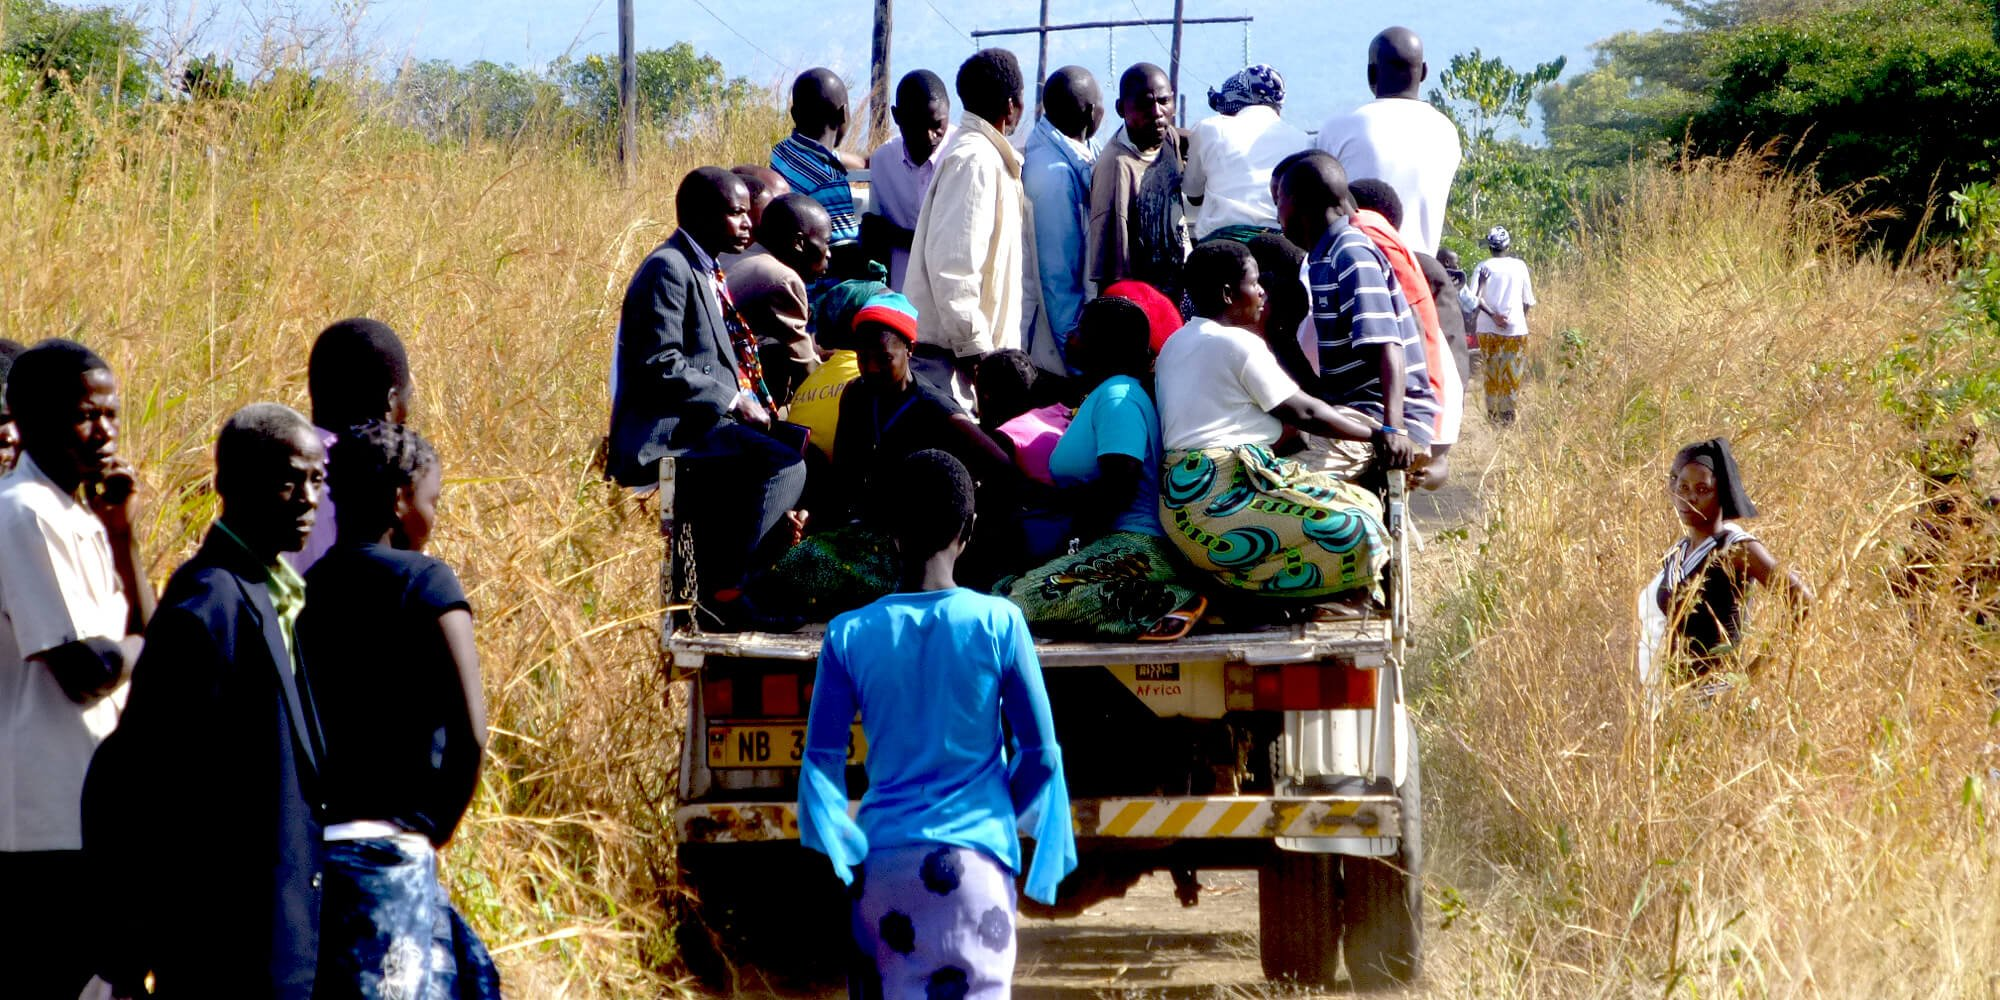 An overloaded lorry transports people in Malawi